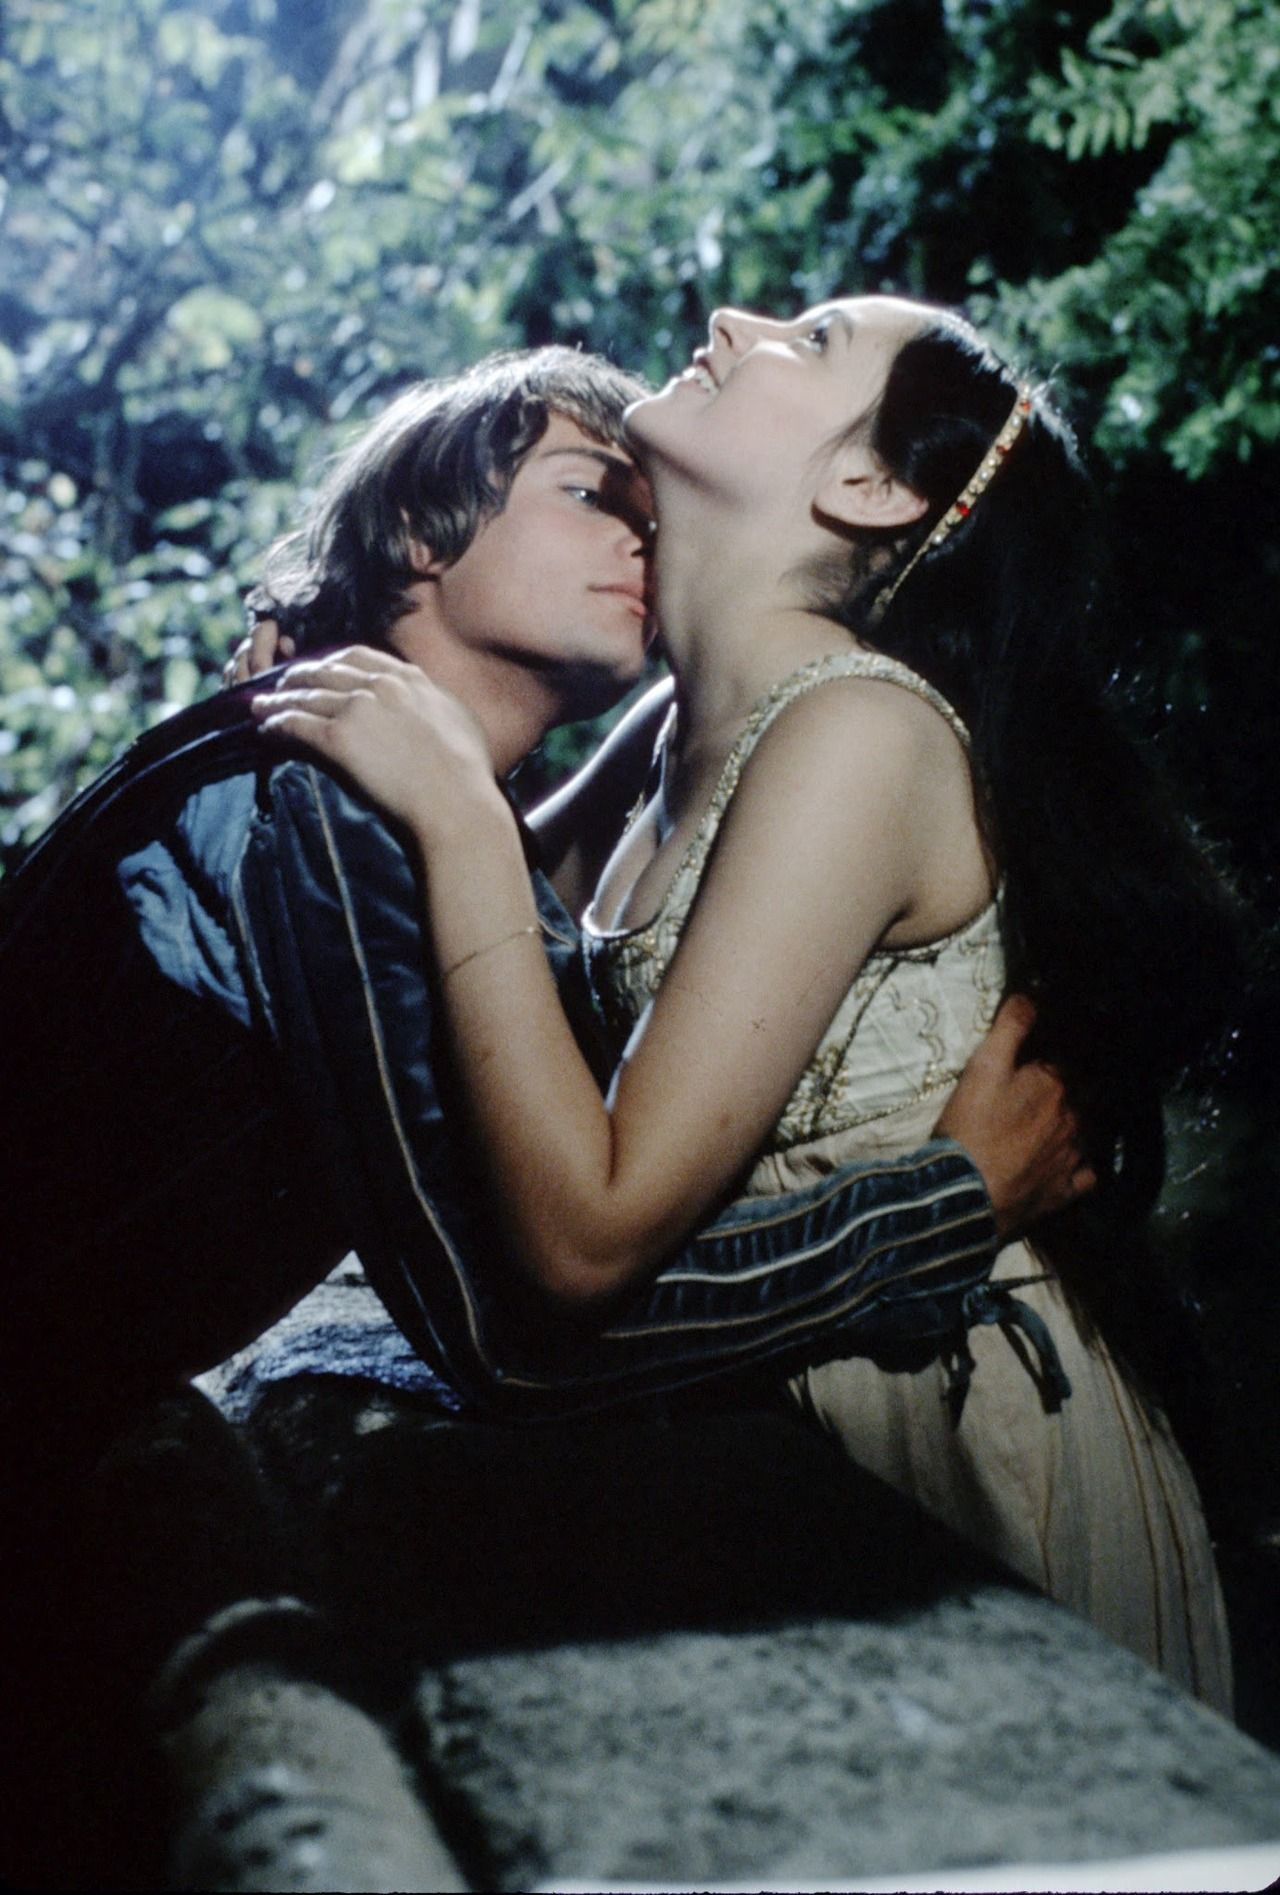 best images about romeo and juliet romeo and 17 best images about romeo and juliet romeo and juliet quotes william shakespeare and tangled